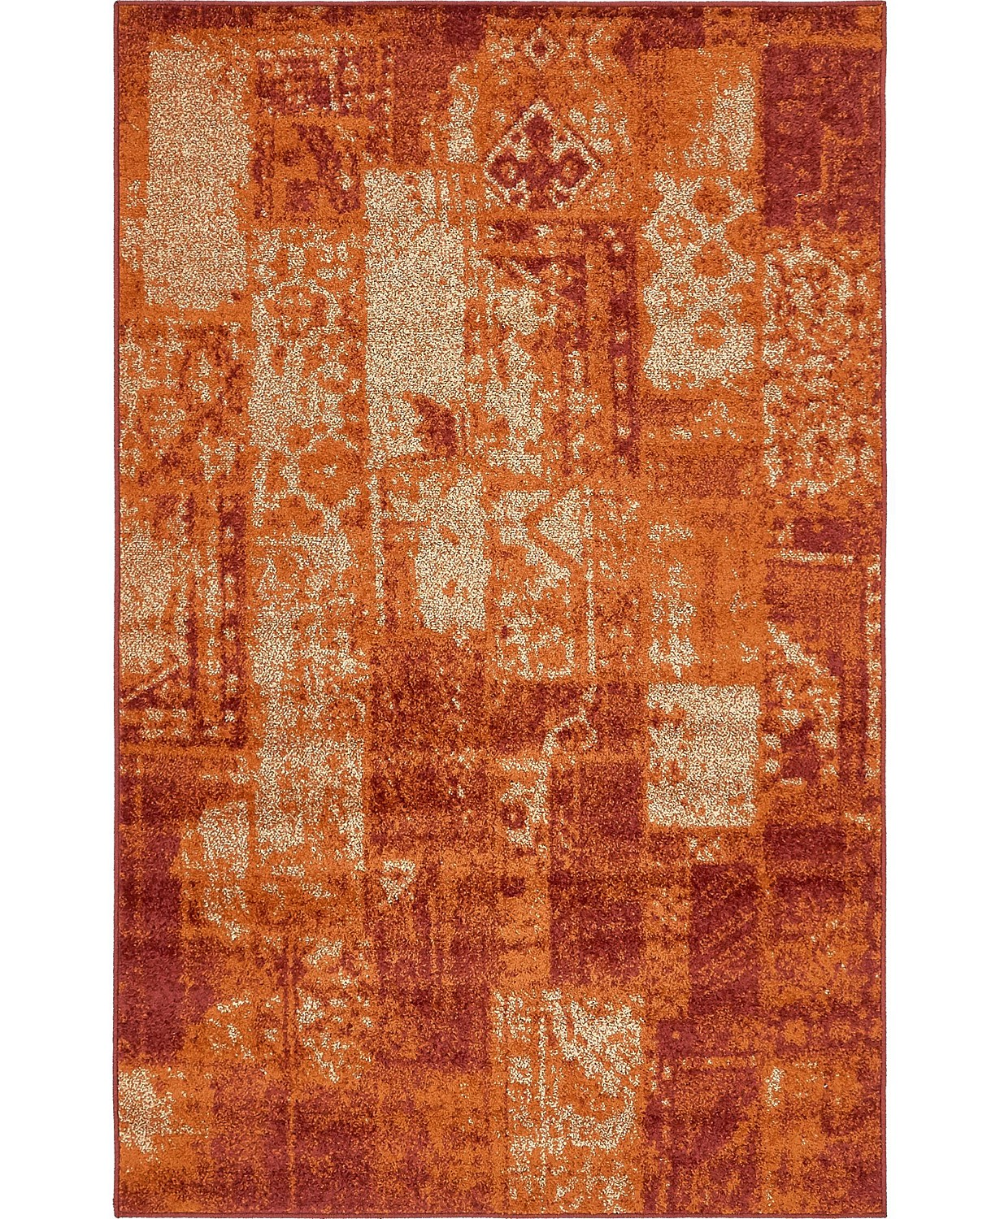 Bridgeport Home Jasia Jas07 Terracotta 5' x 8' Area Rug & Reviews - Rugs - Macy's